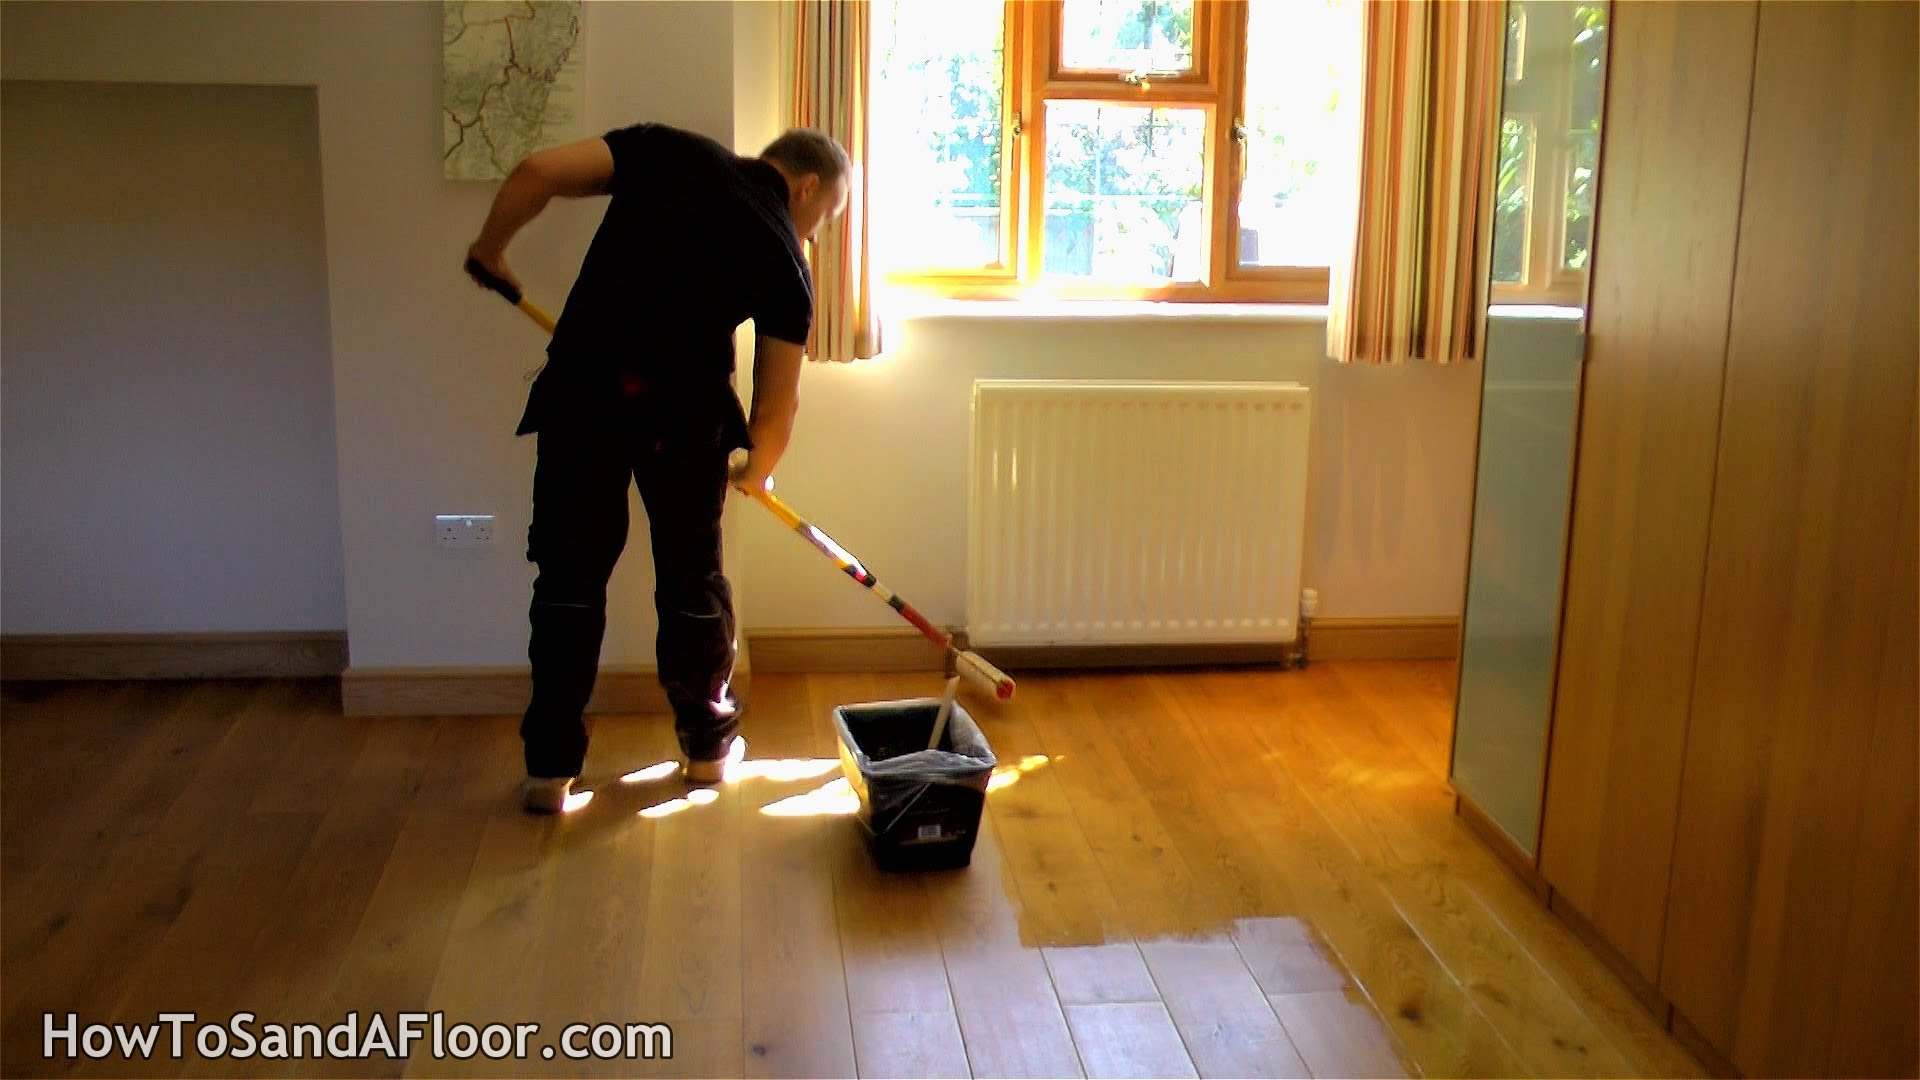 How To Refinish A Wooden Floor Without Sanding Under 1 Hour